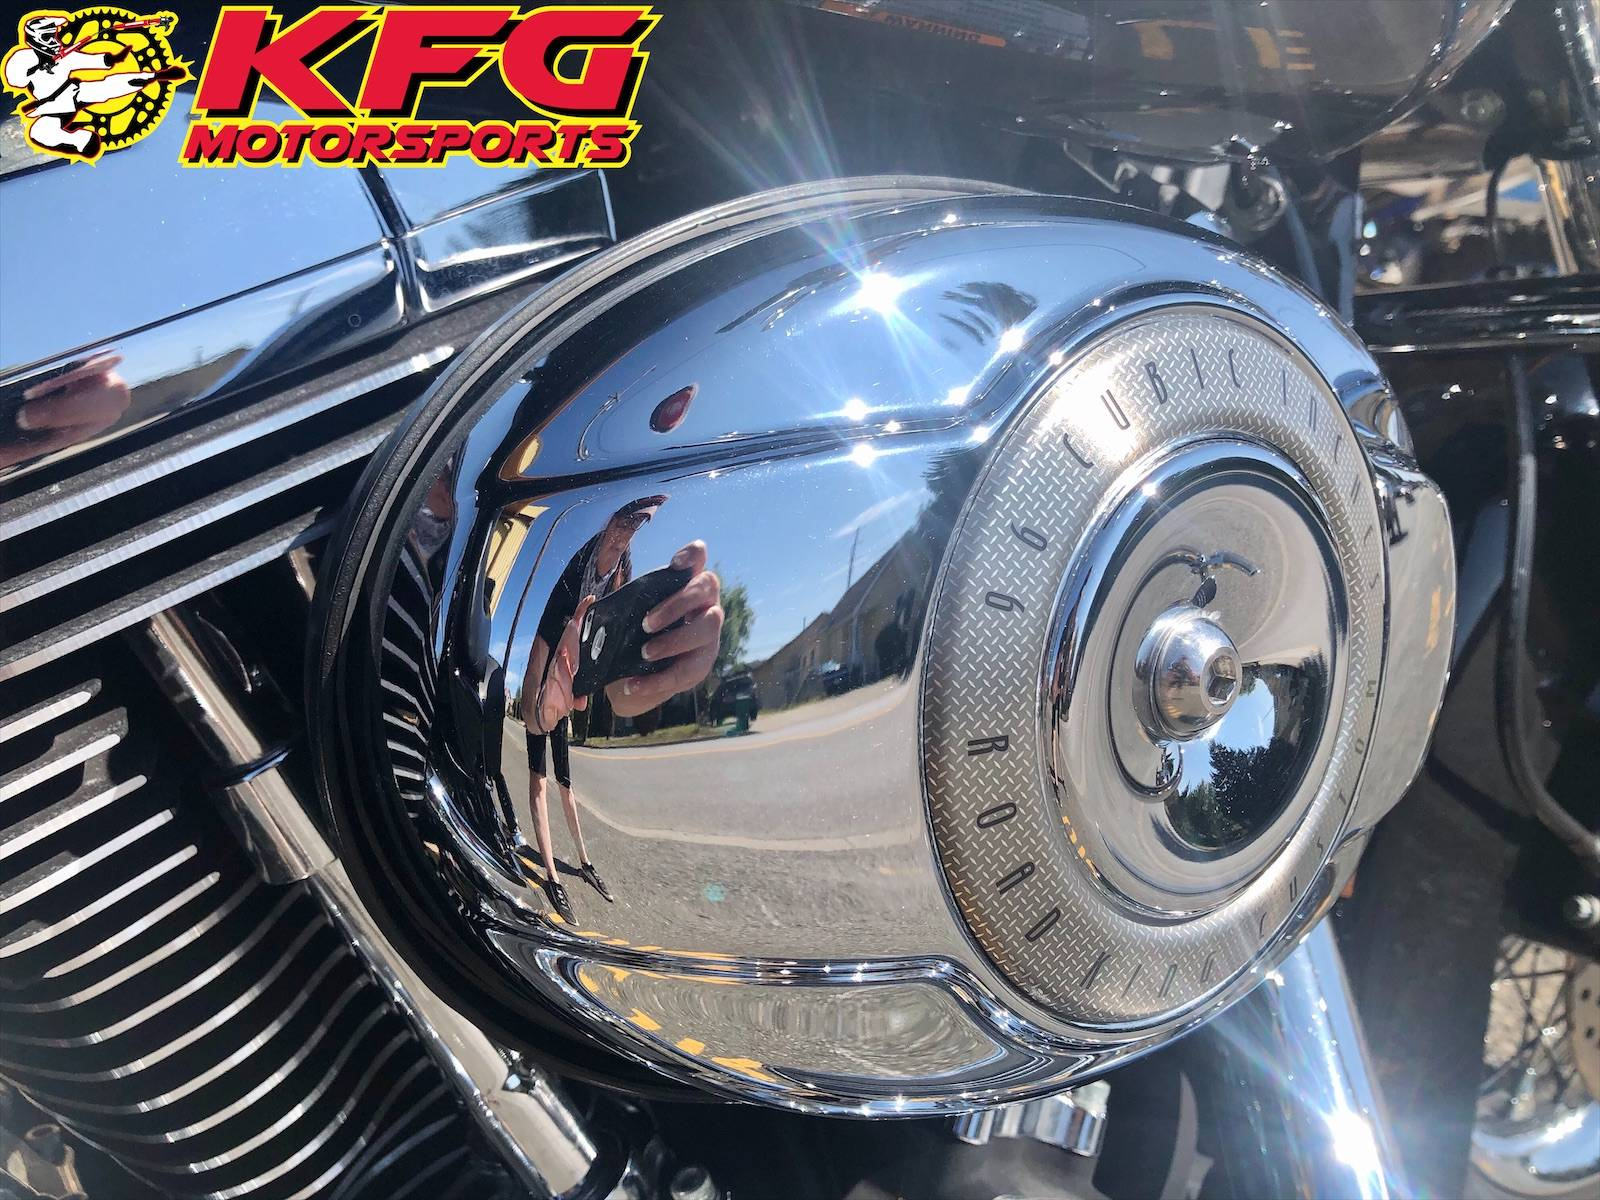 2007 Harley-Davidson FLHRS Road King® Custom in Auburn, Washington - Photo 5